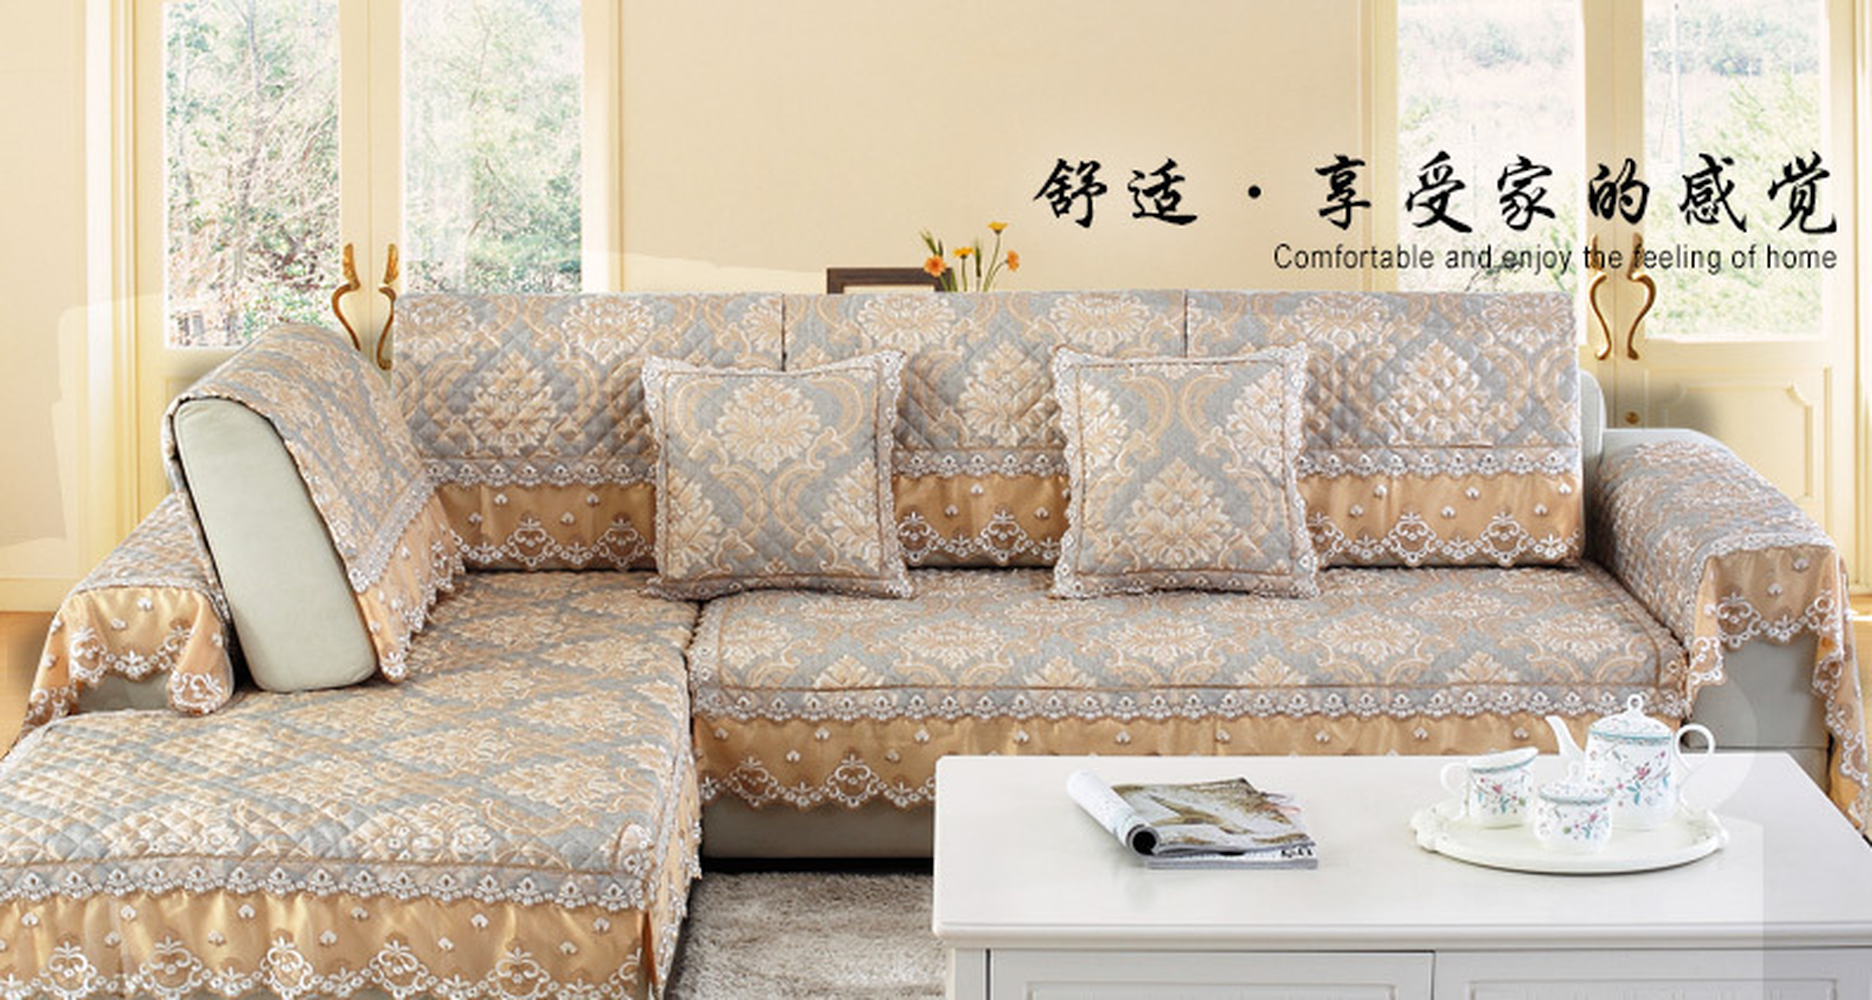 Upscale European Linen Sectional Sofa Cover High Quality Embroidery Couch Slipcovers Living Room Towel Cushion Pillowcase In From Home